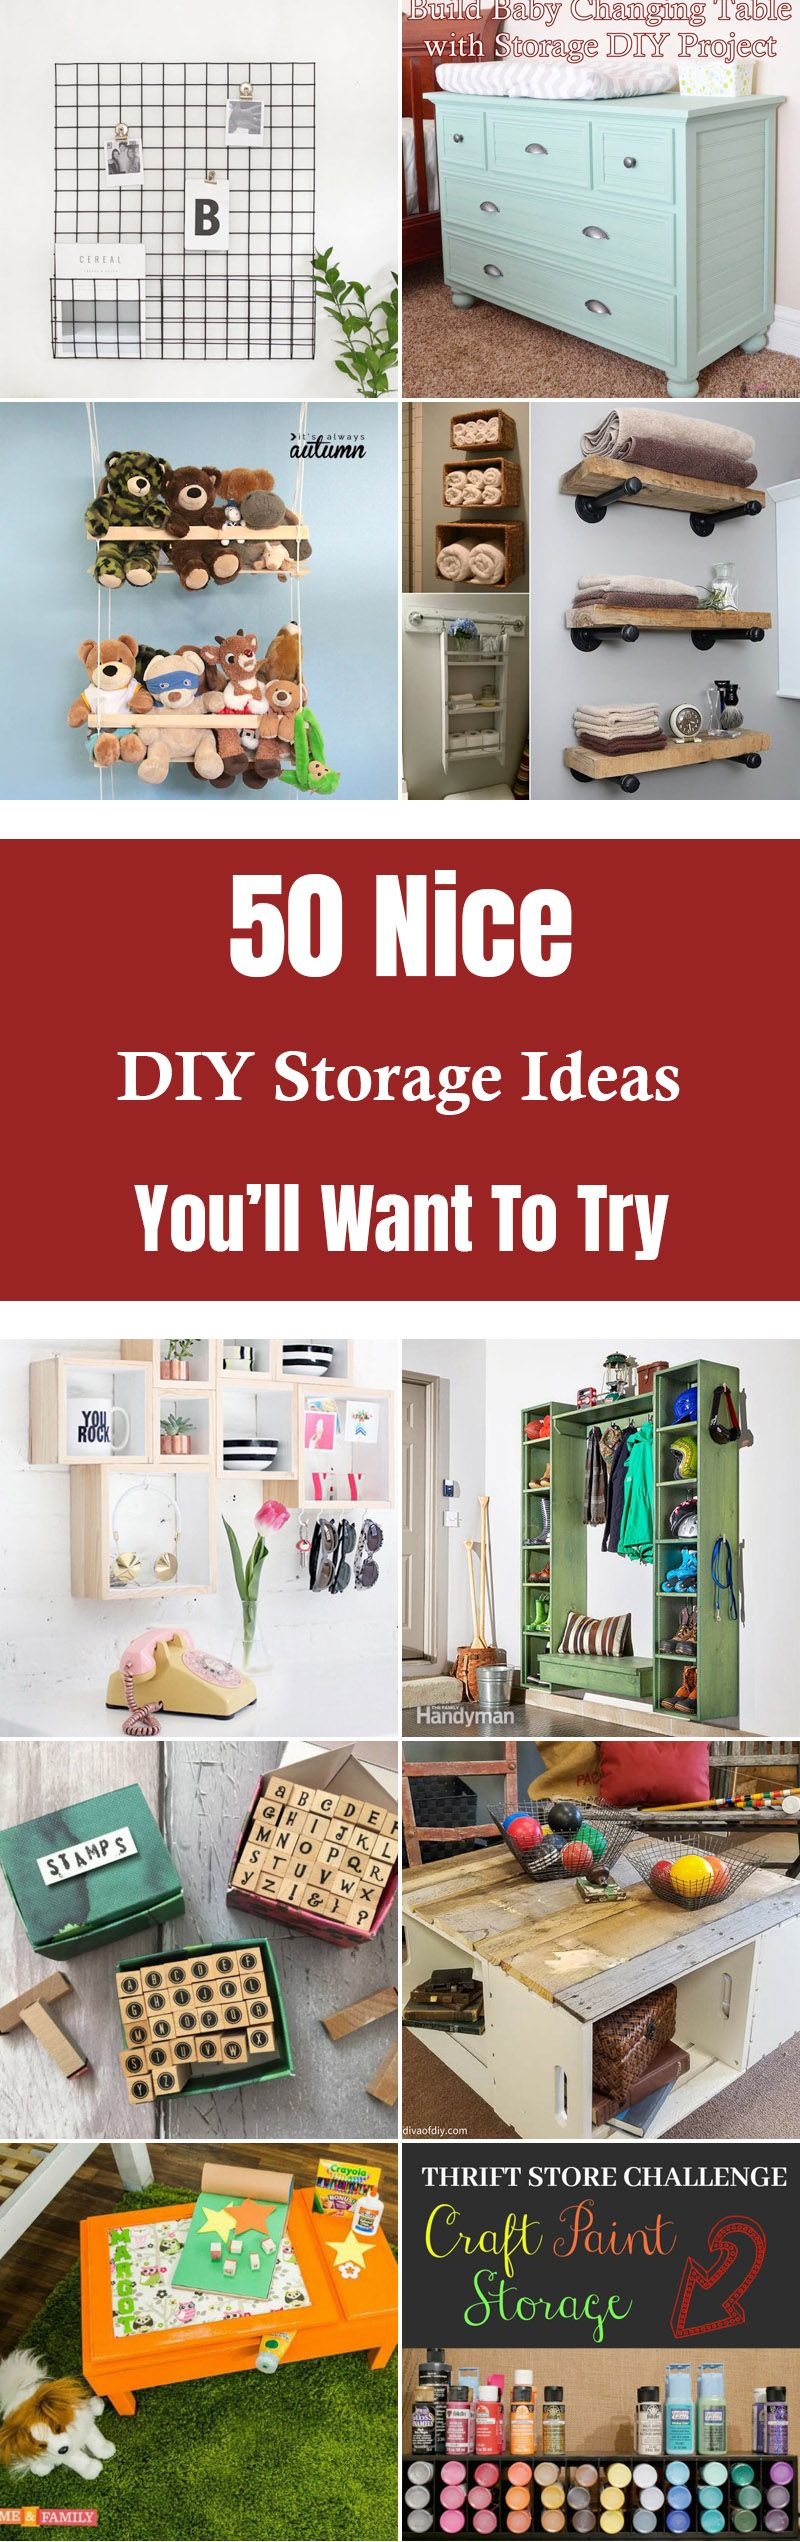 50 Nice Diy Storage Ideas Youll Want To Try